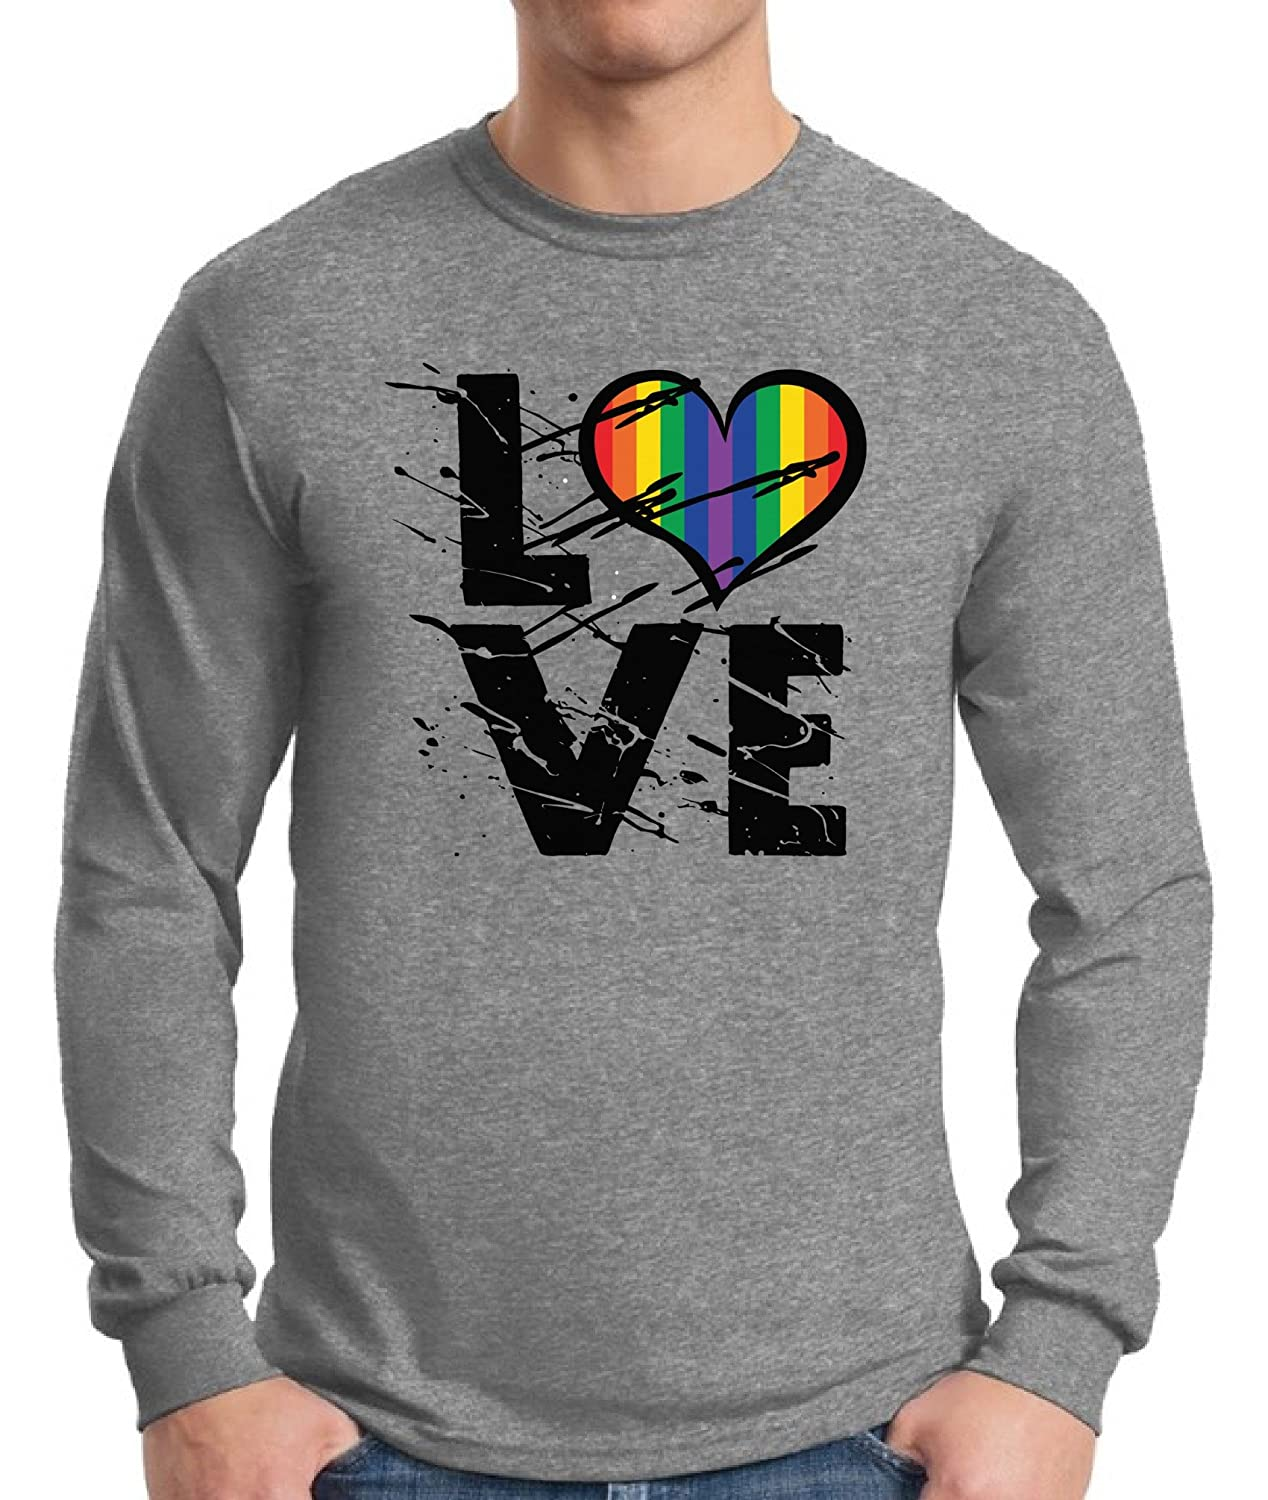 18598cbd89 Strut around in this Awkward Styles Love Long Sleeve T shirt Tee and spread  the love for all the colors of the rainbow!